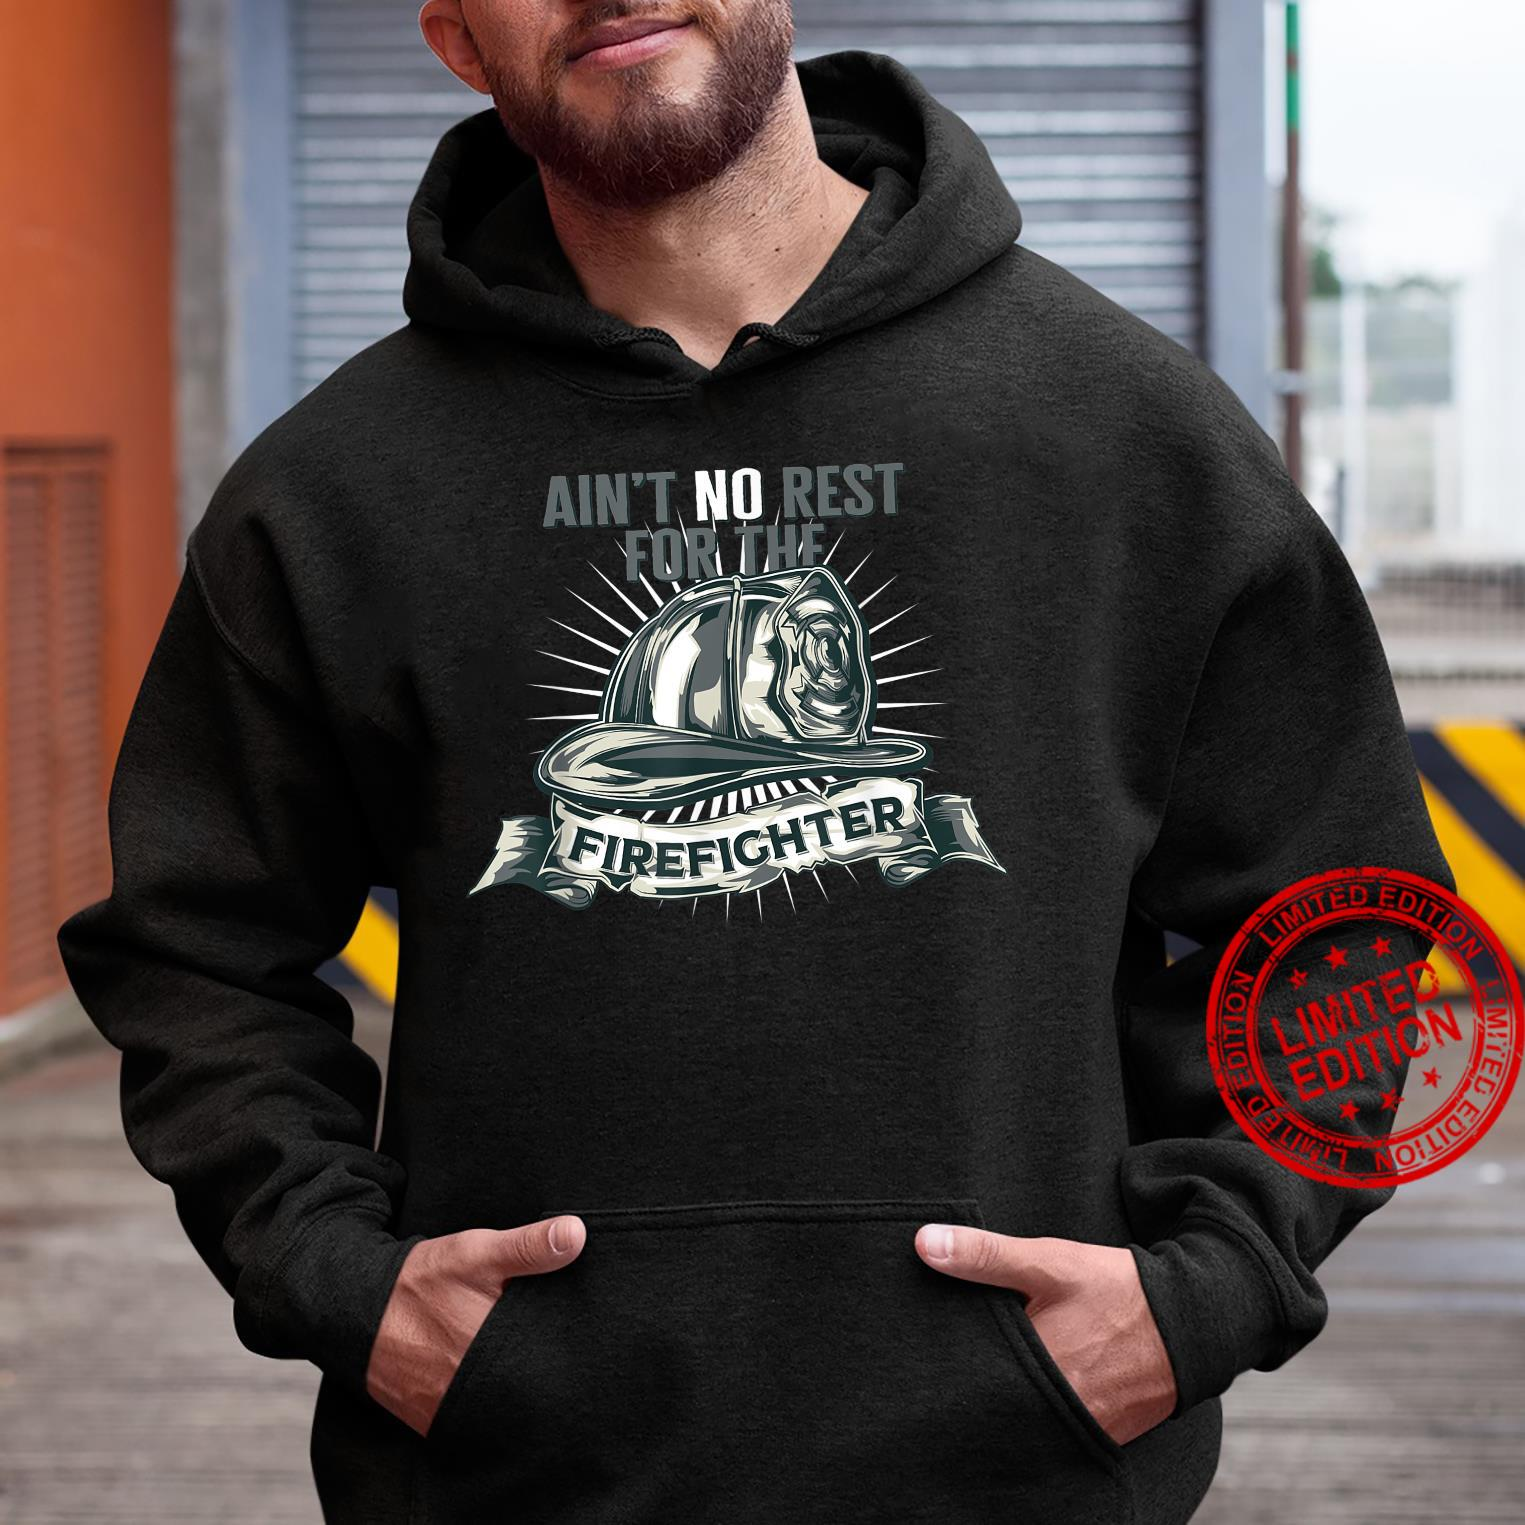 Ain't No Rests For The Firefighter Unsung Heroes Fireman Shirt hoodie